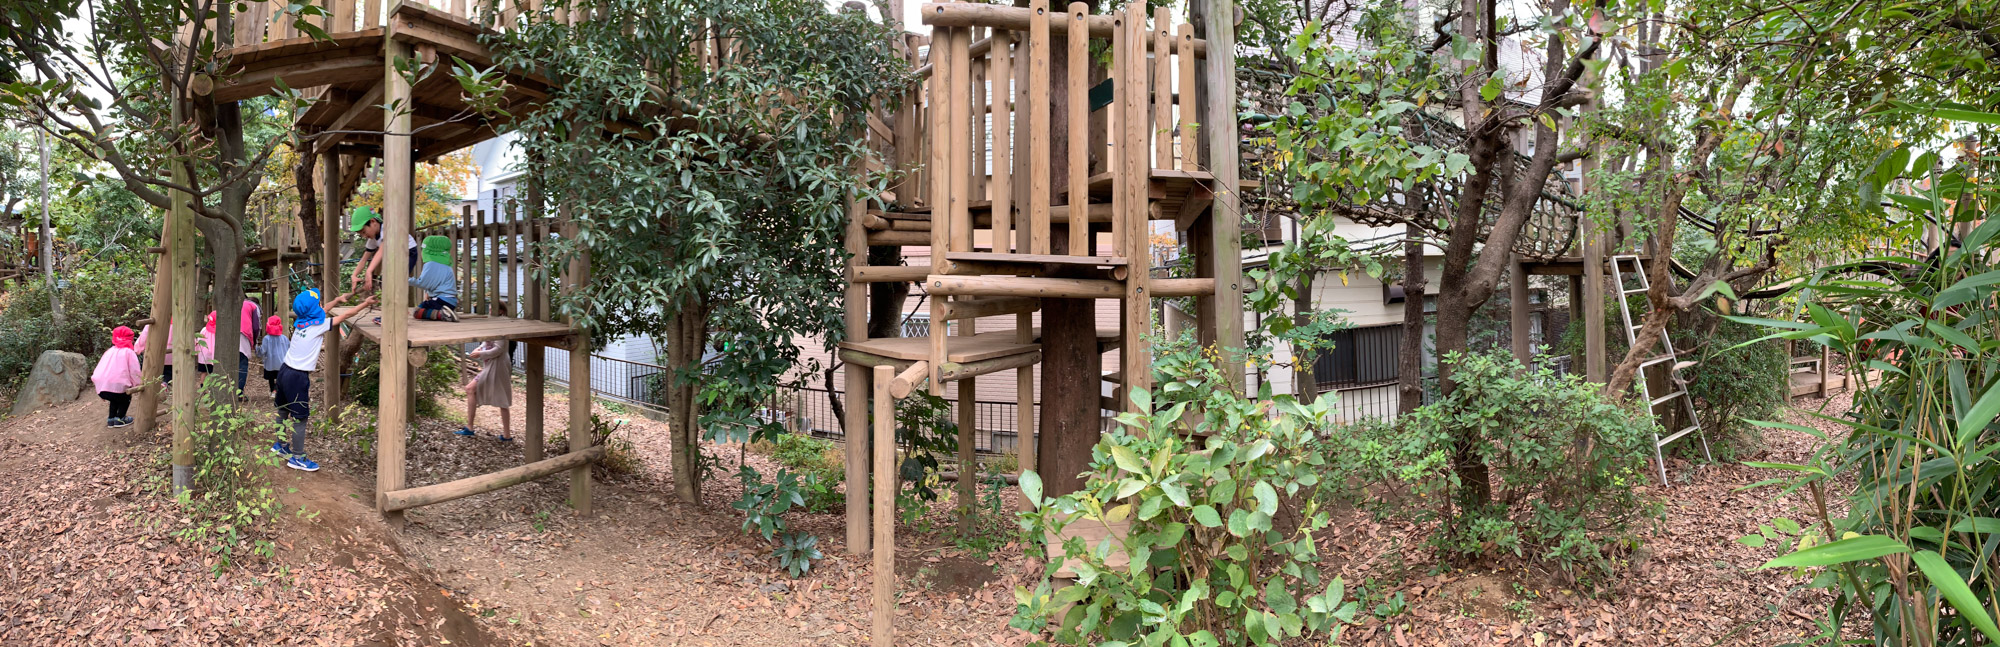 Preschool children at Miyamae Kindergarten explore an area of their school grounds that includes a variety of challenging tree houses and forts built in and among a small forest grove on a hillside.